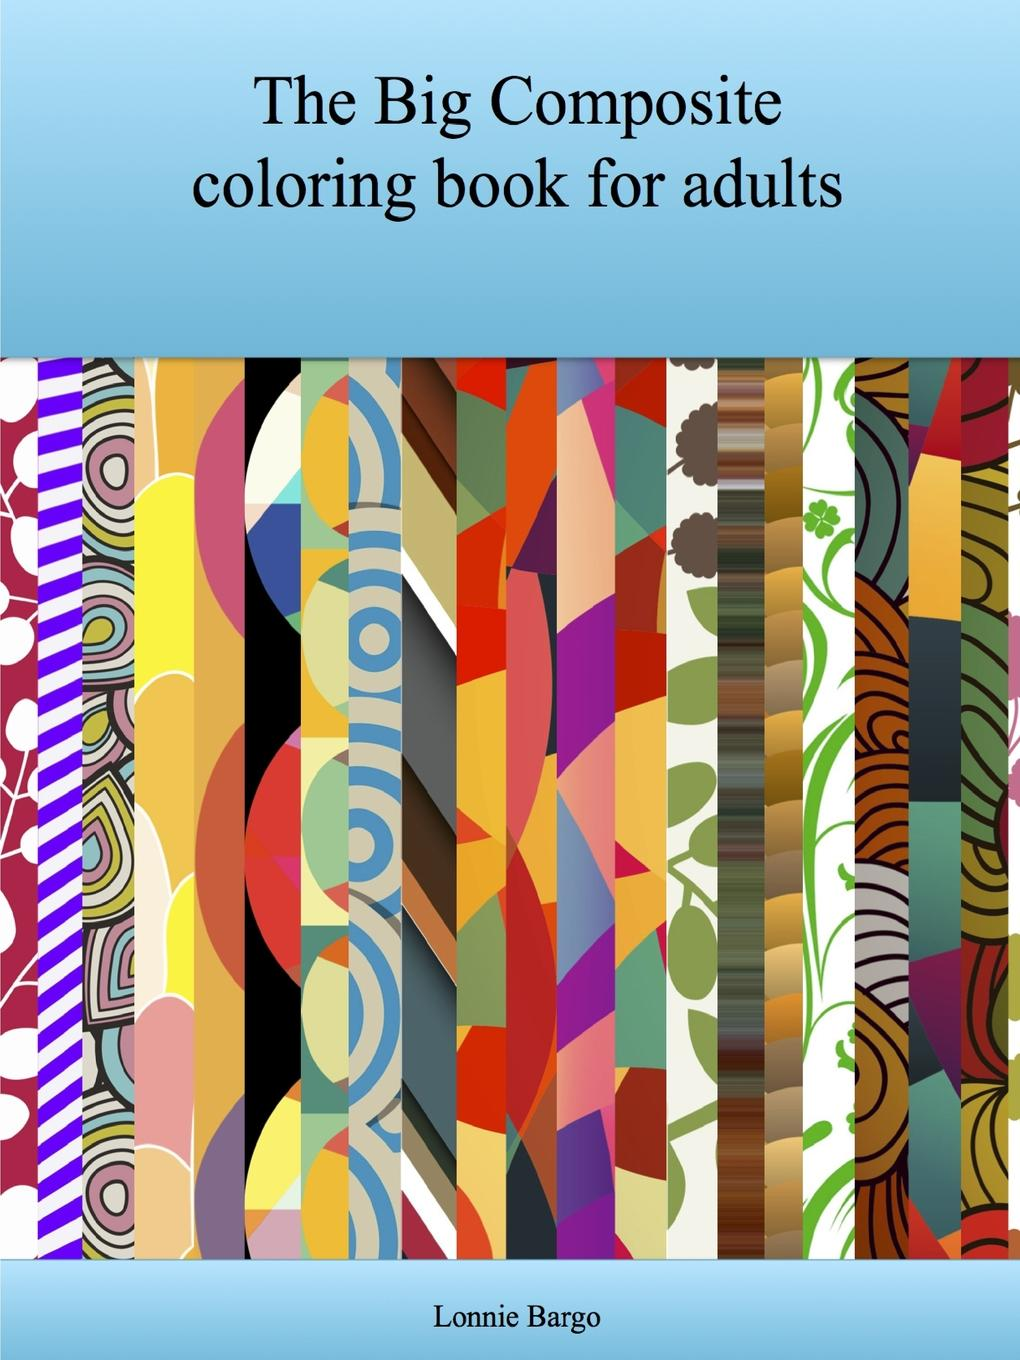 Lonnie Bargo The Big Composite coloring book for adults jasmine taylor puppy coloring a realistic picture coloring book for adults